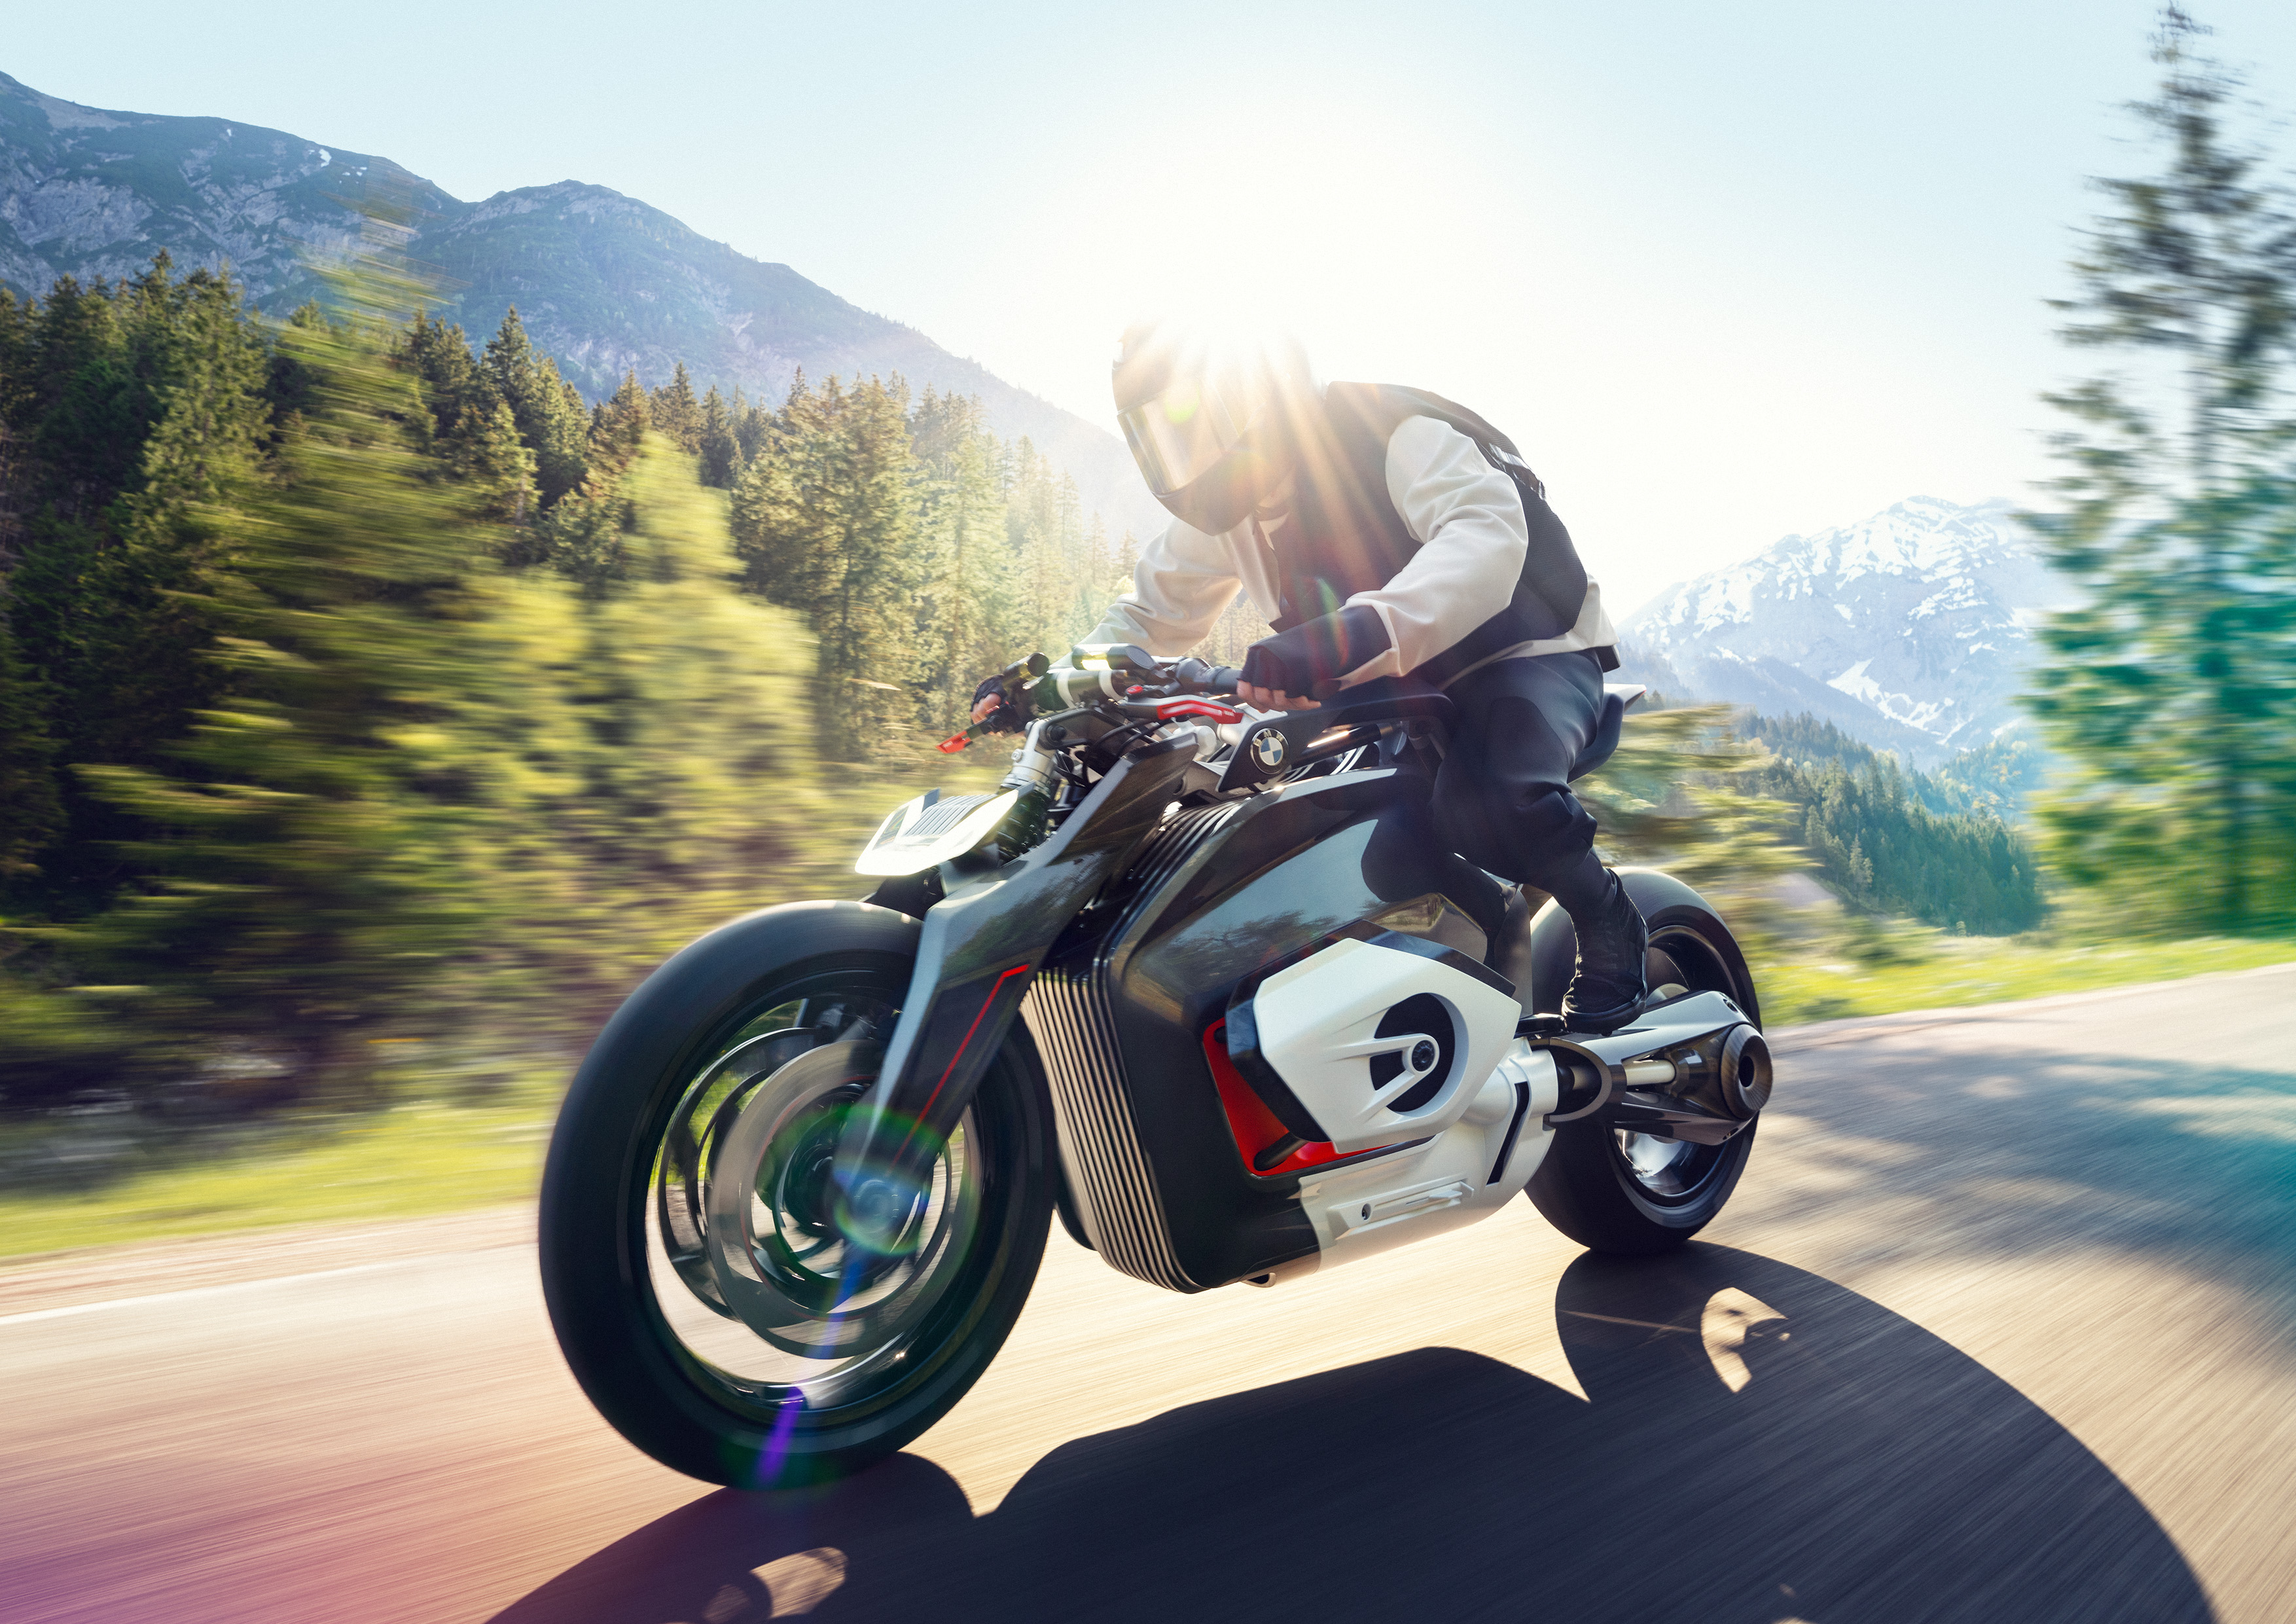 New BMW Motorcycle >> Here Is Bmw S New Electric Motorcycle Concept Techcrunch